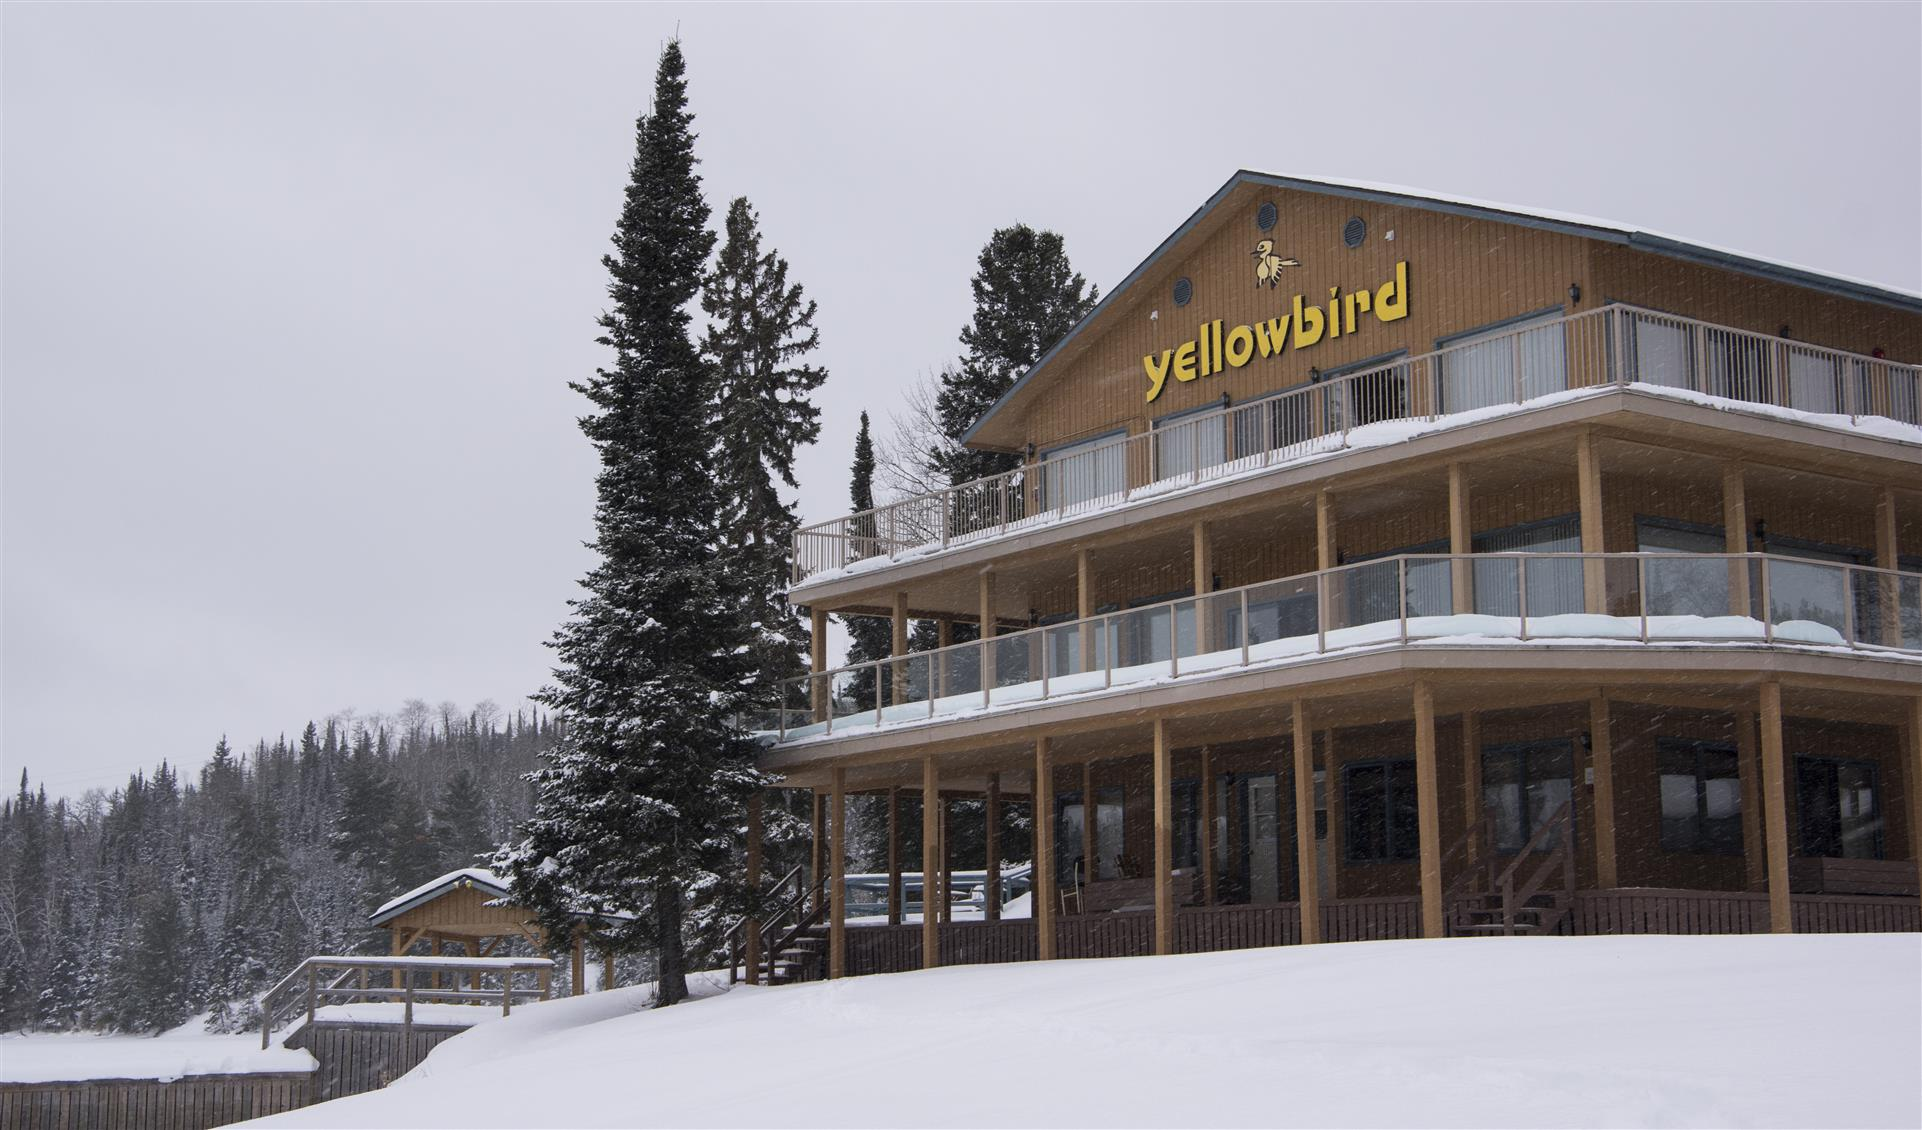 Yellowbird Lodge